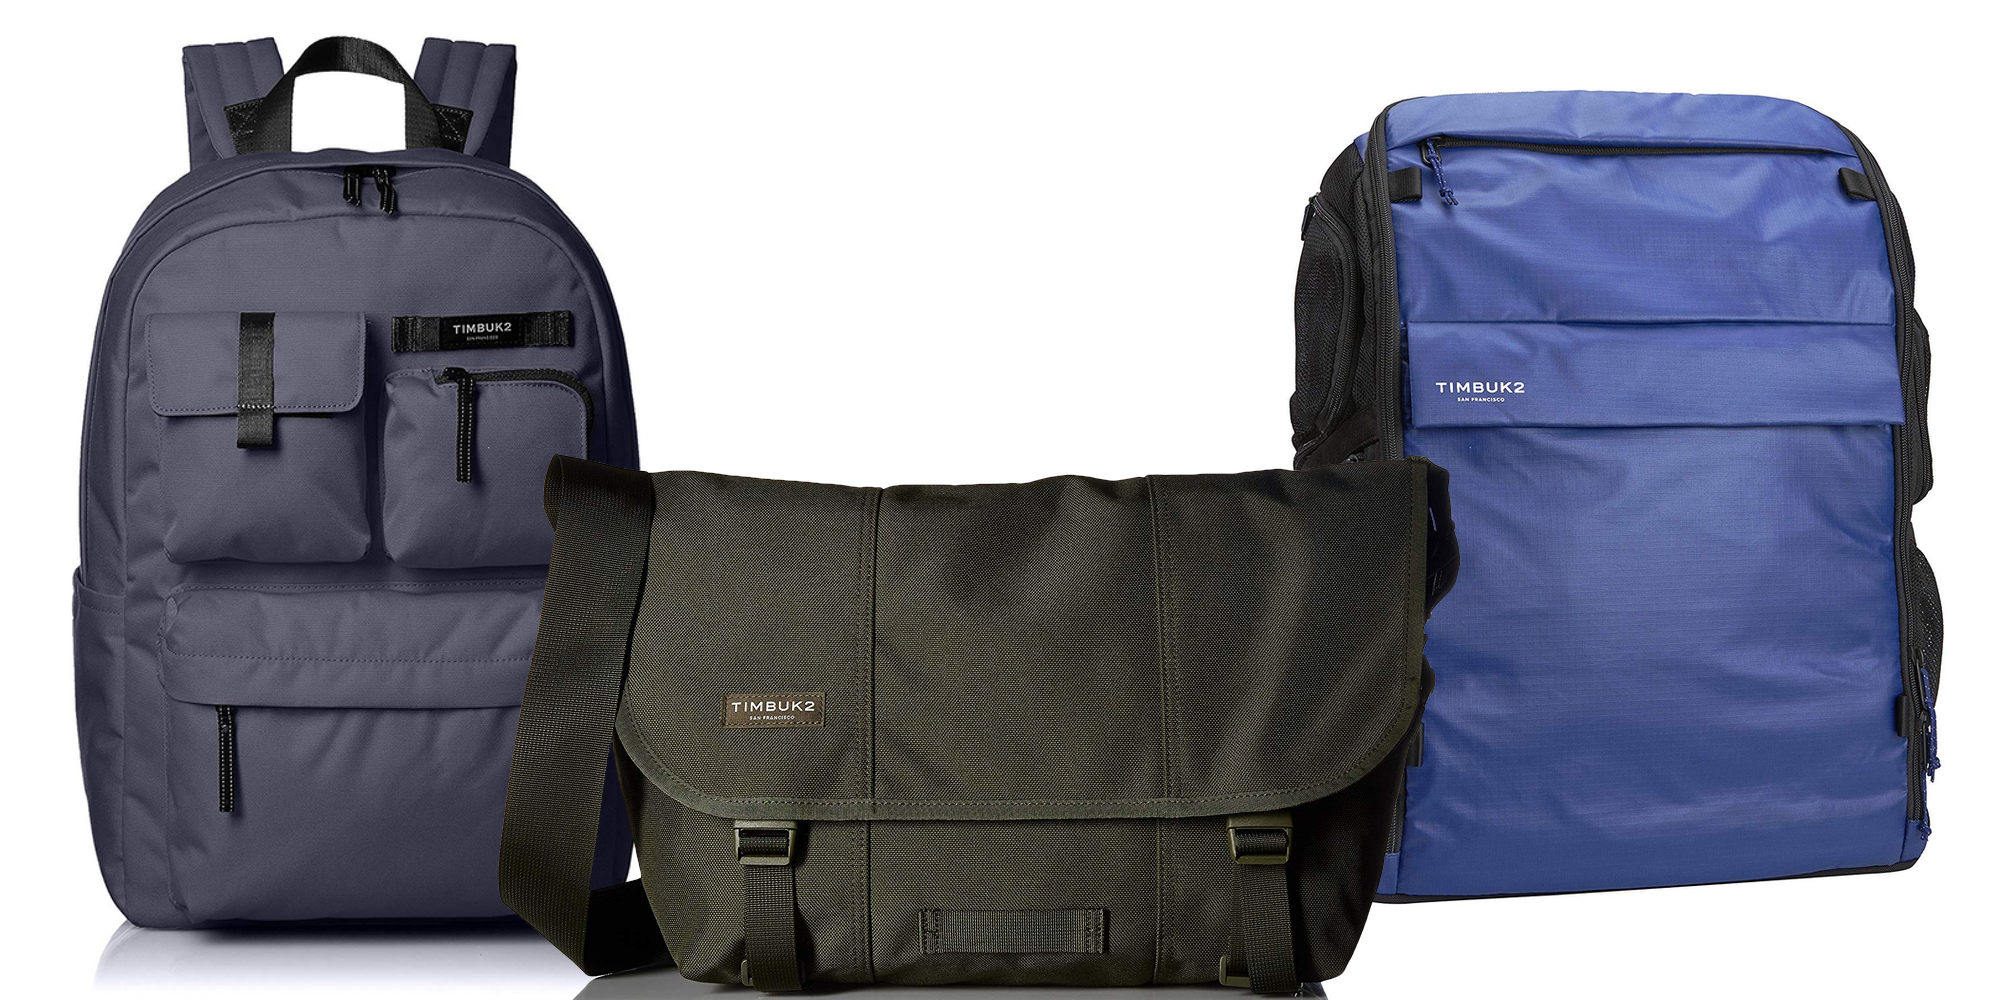 Save up to 45% on select Timbuk2 MacBook Backpacks and more from $46 shipped